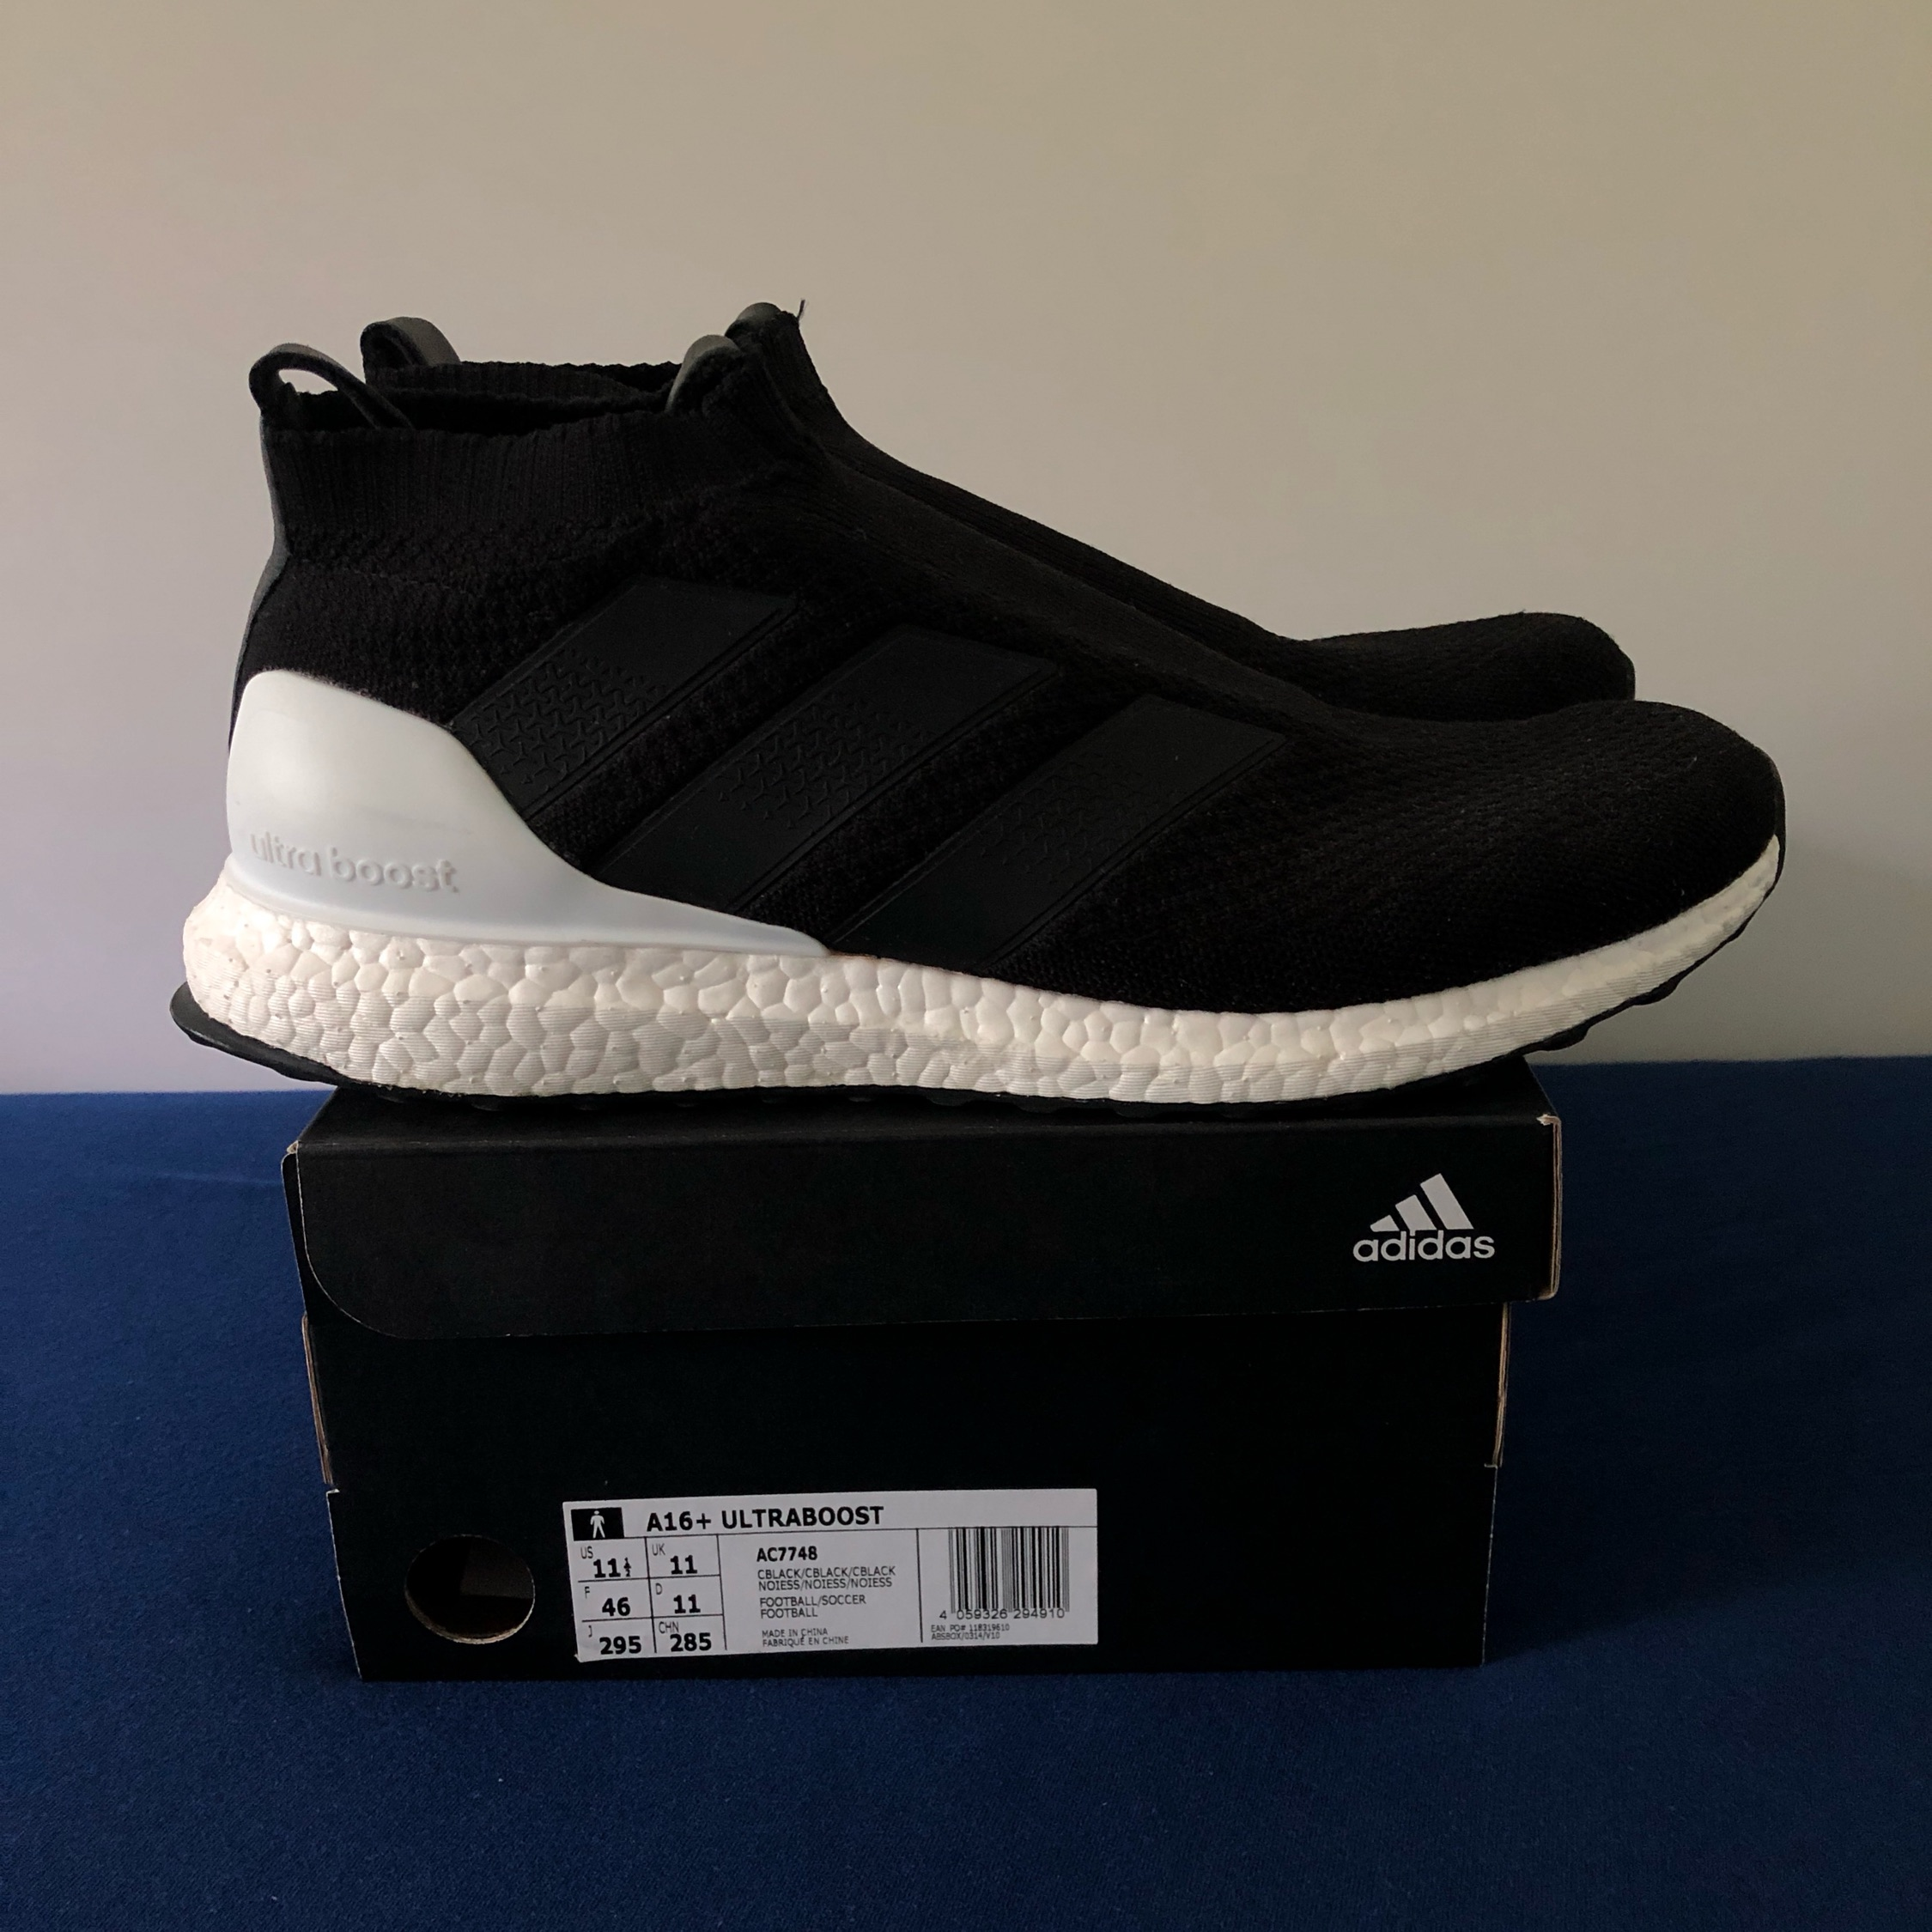 online store 54945 f0acb Adidas Ace 16+ Ultra Boost Core Black